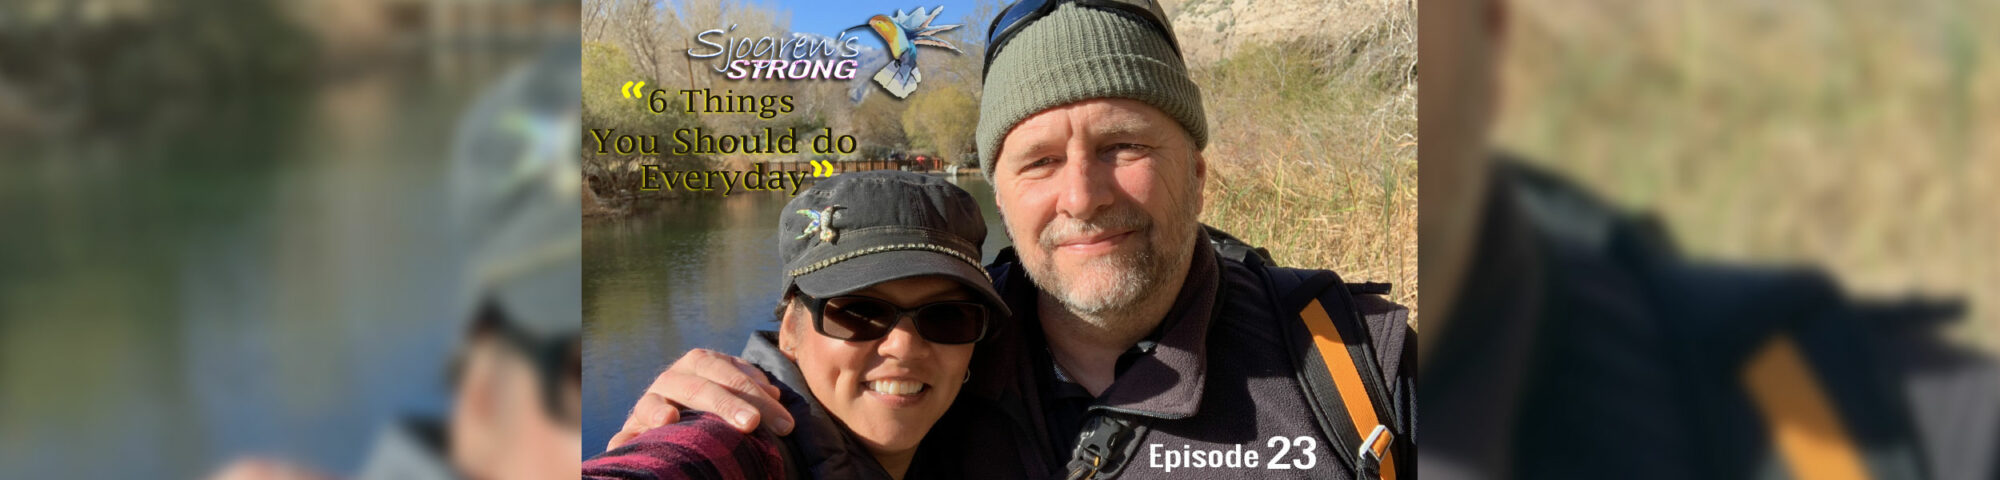 Episode 23, Brian & Lupe, 6 things you should do everyday